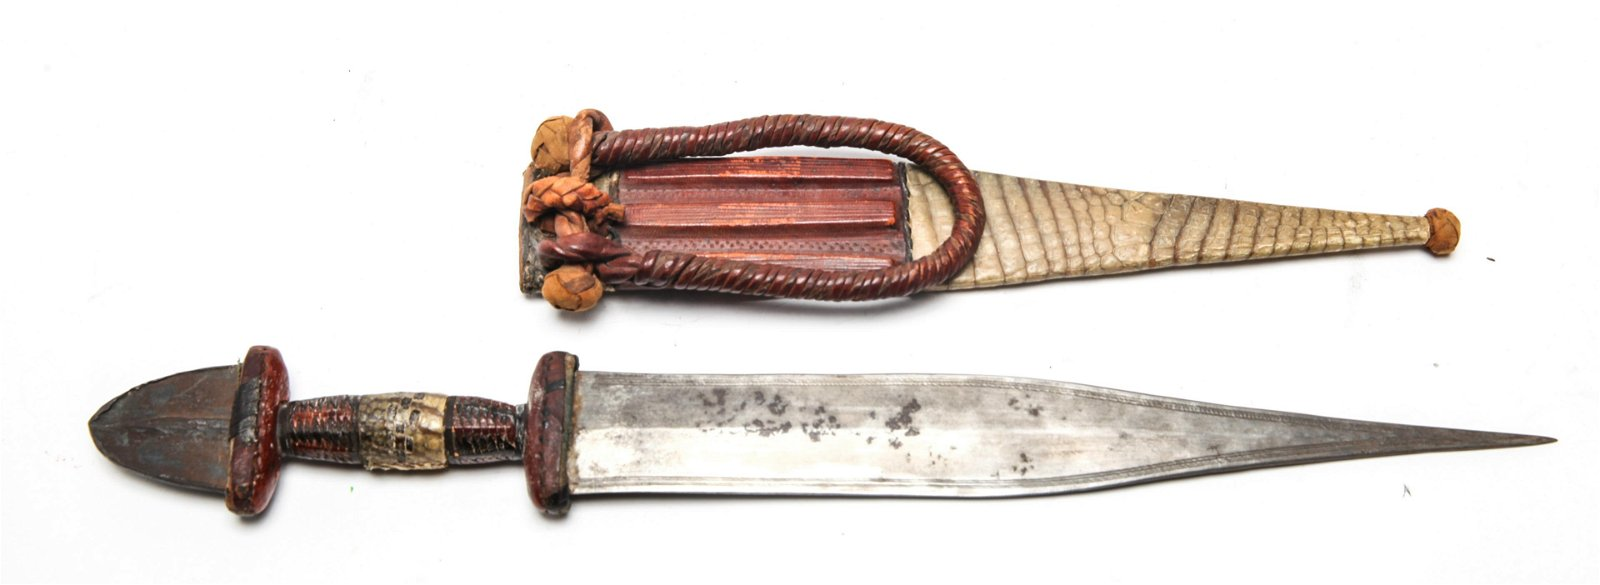 North African Knife w Snake And Leather Sheath